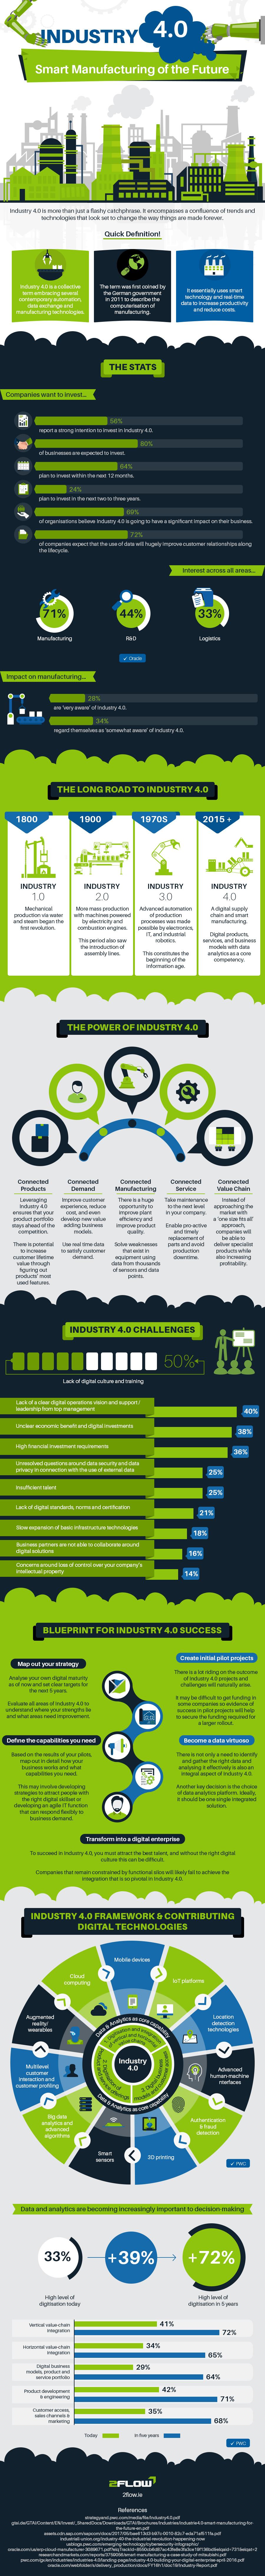 Industry 4.0 & Smart Manufacturing Explained